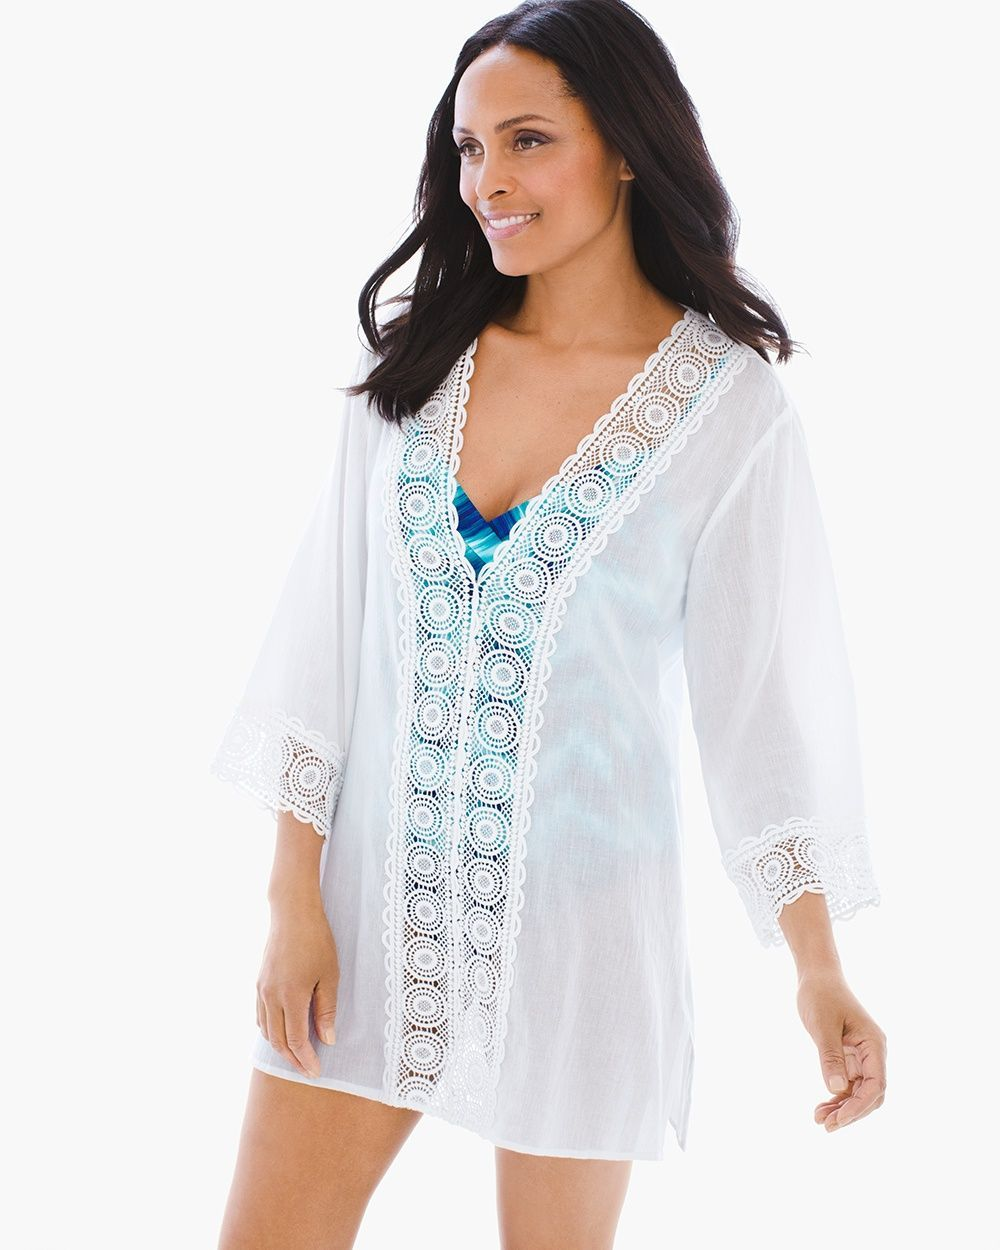 8812d3b8ce Chico's Women's La Blanca Island Fare Swim Cover-up Tunic, White, Size: XS